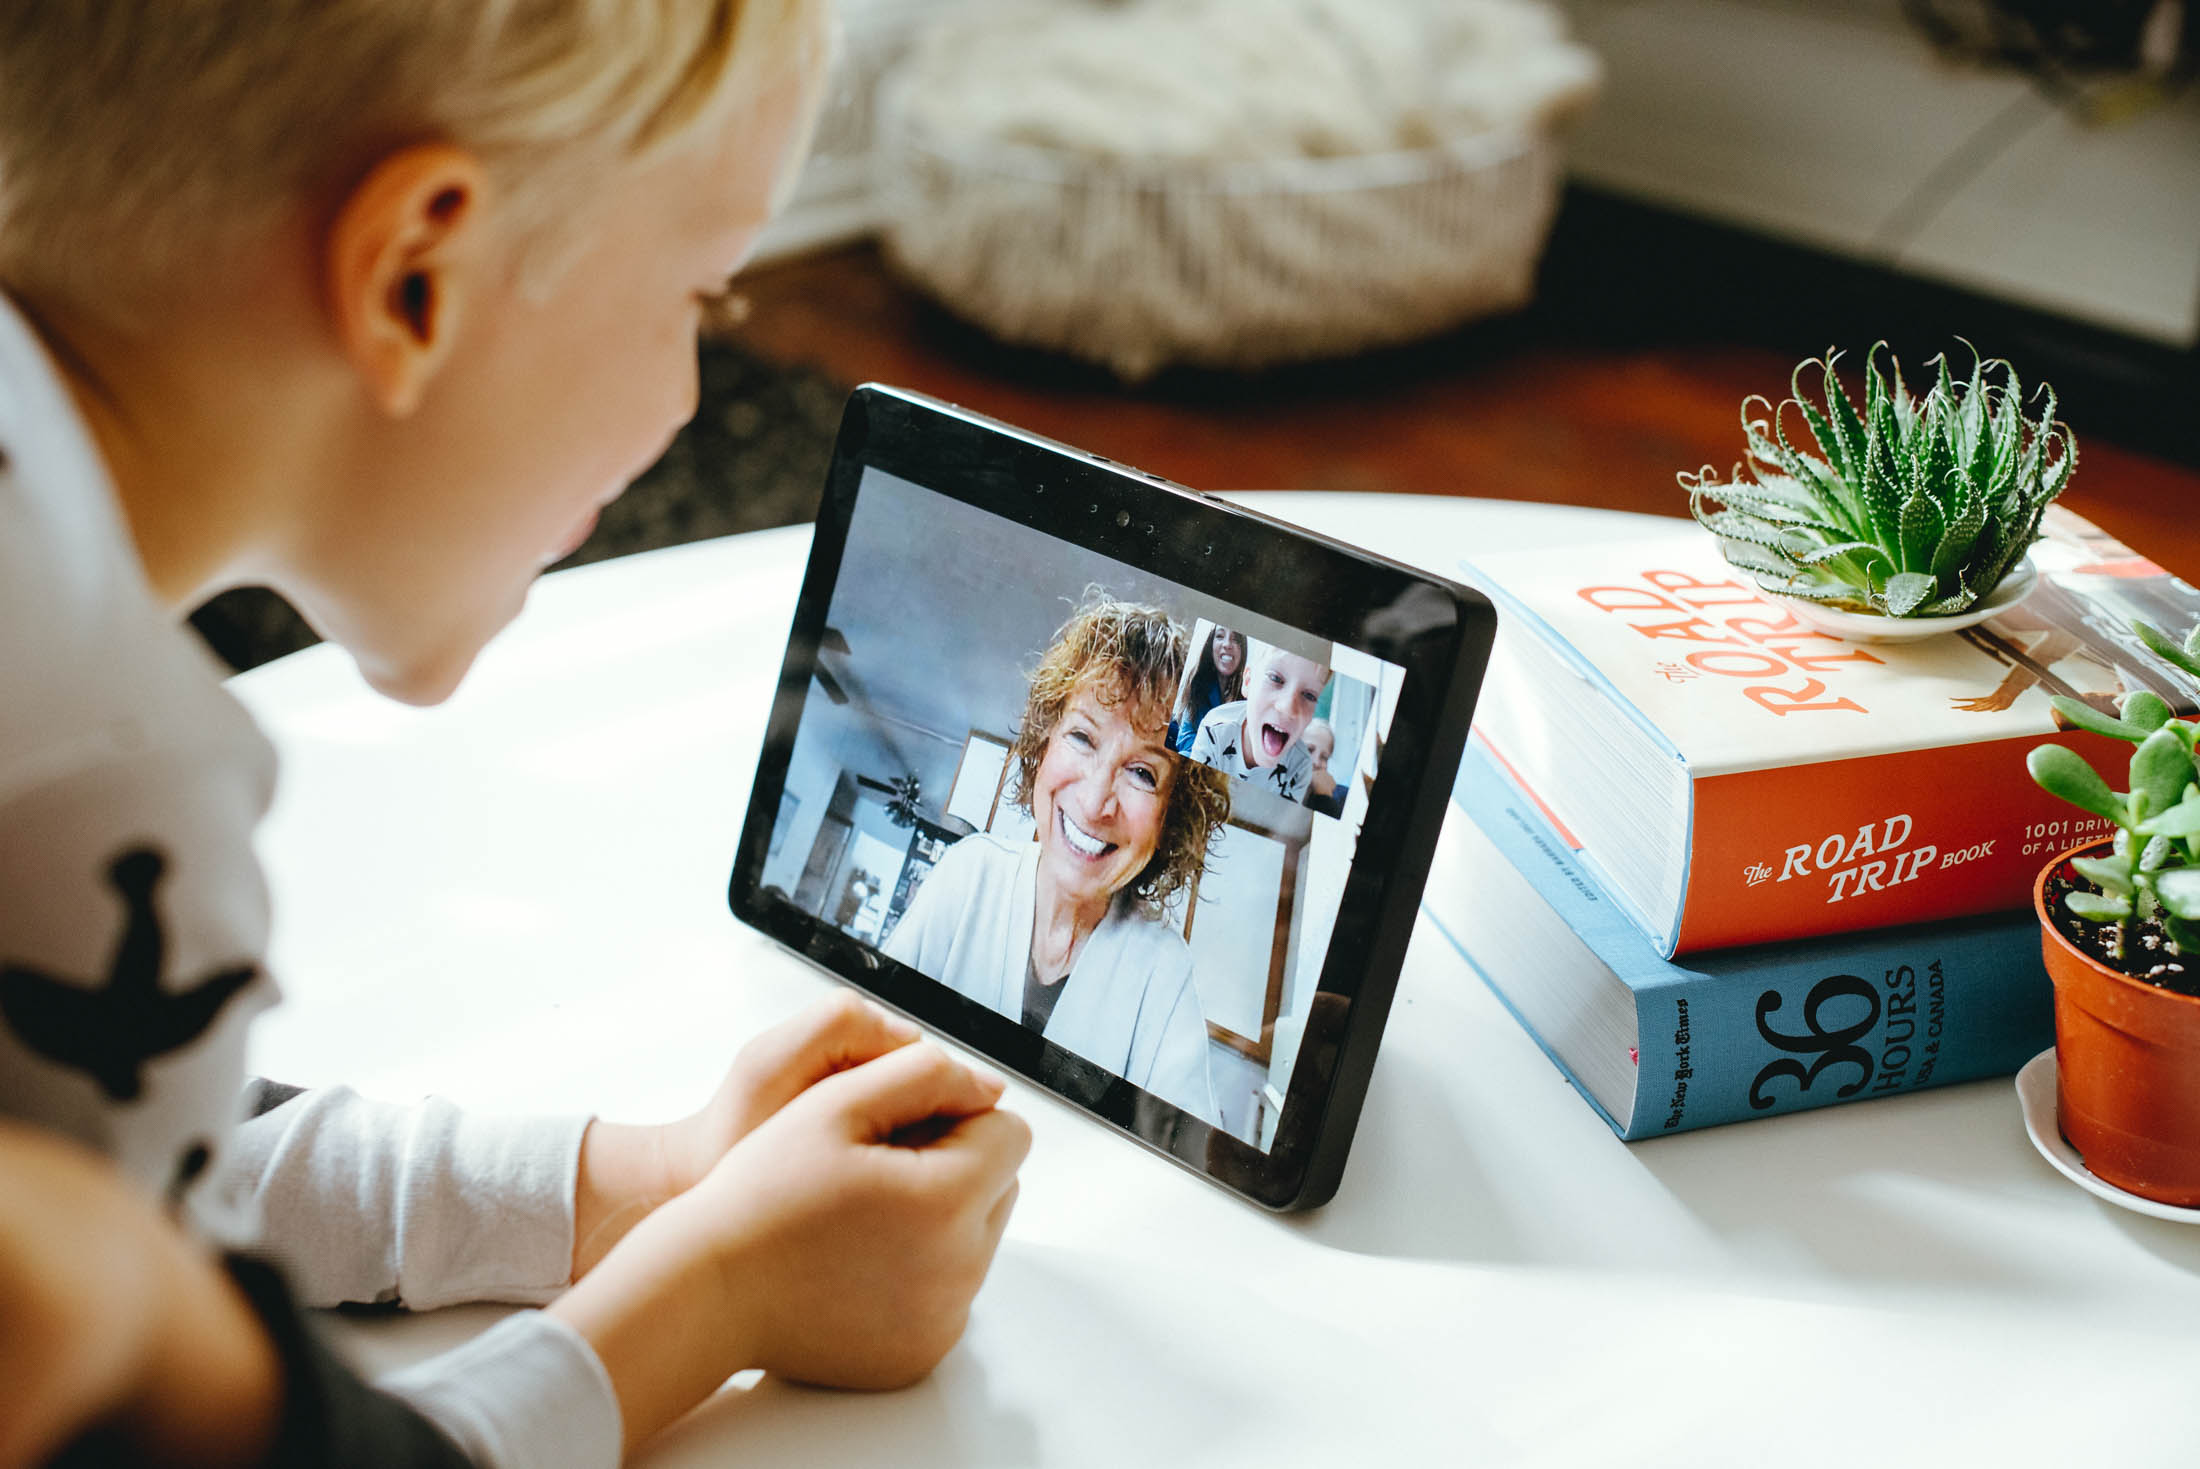 We freaking love our Amazon Echo Show! The screen & drop-ins make it so easy to stay connected with grandparents & other family...it's a game-changer!